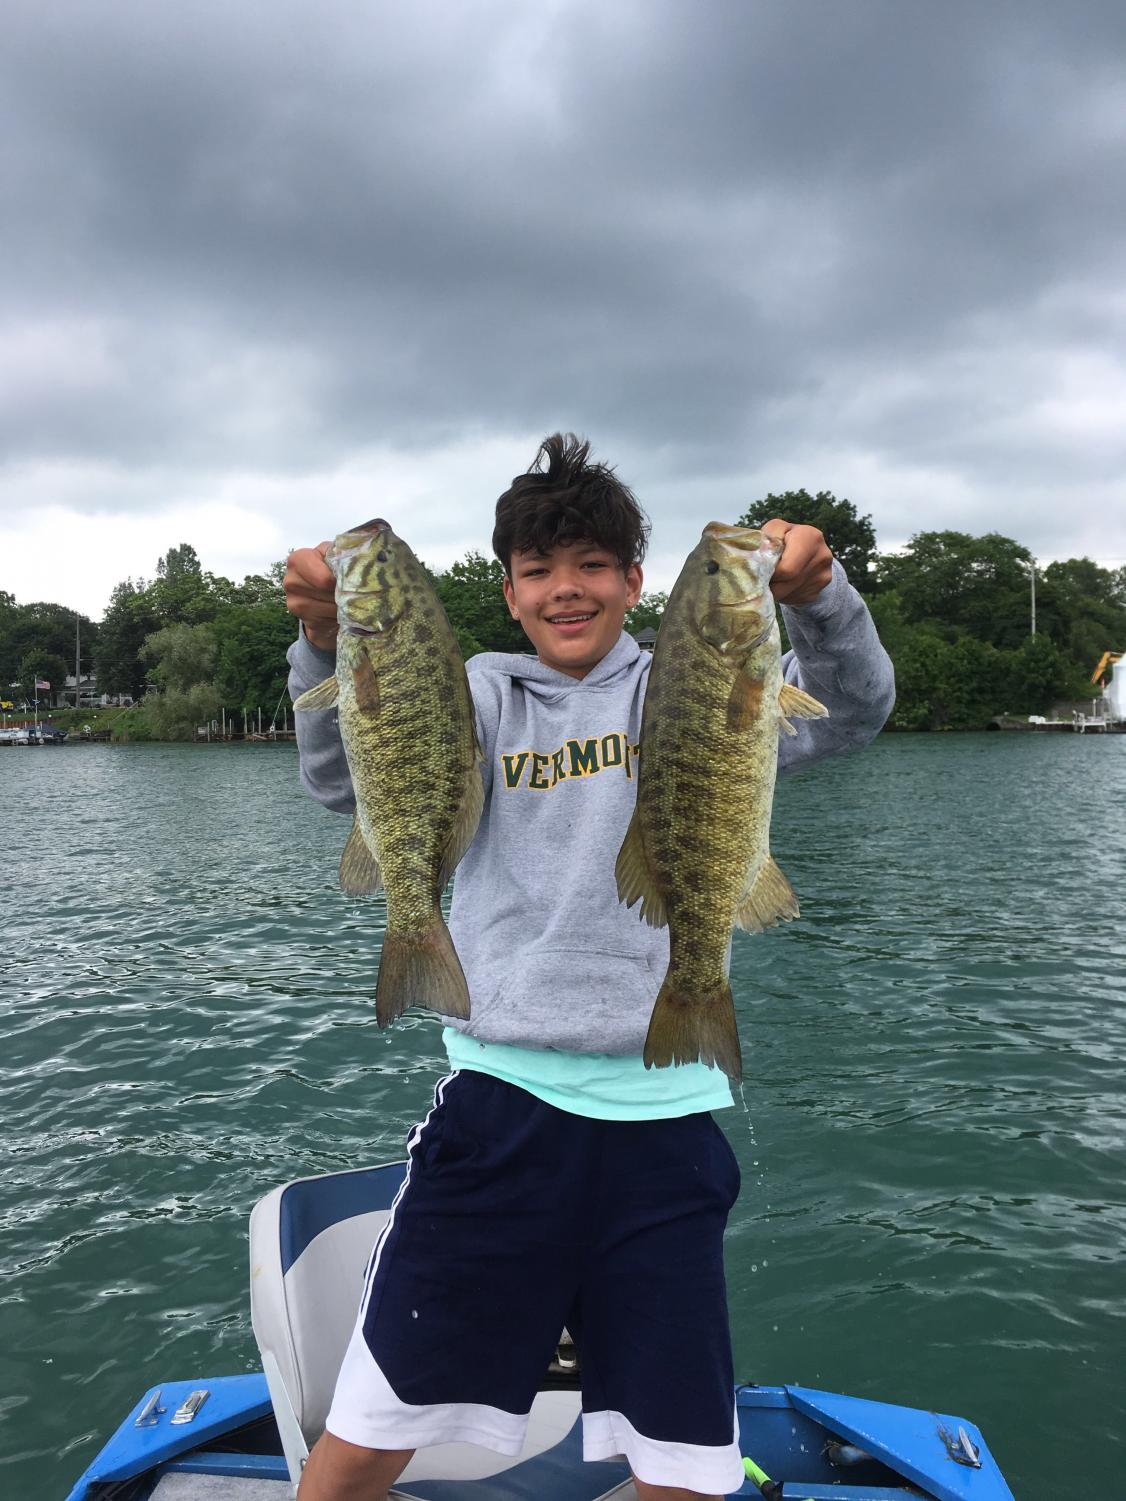 Tang+displaying+his+two+best+catches+before+getting+off+of+the+Detroit+River+after+a+successful+day+on+the+water.